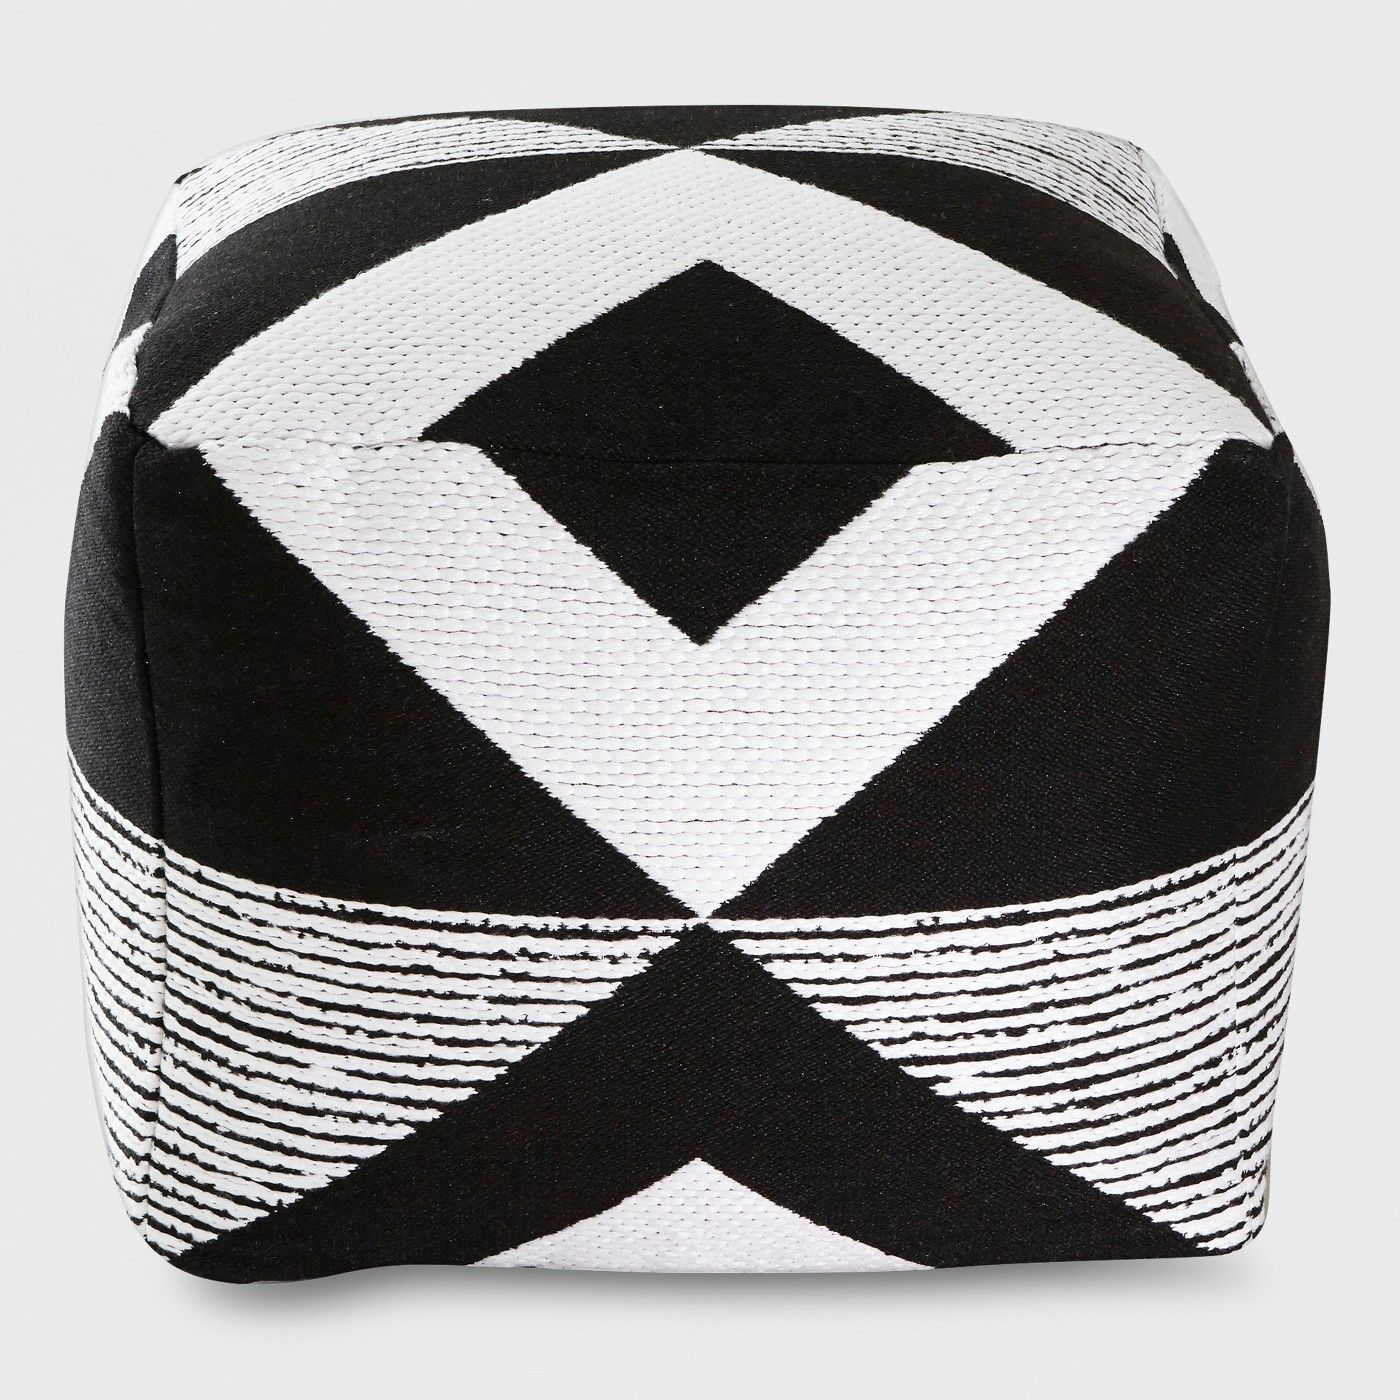 Geo Woven Outdoor Pouf Black Project 62 Target Outdoor Pouf